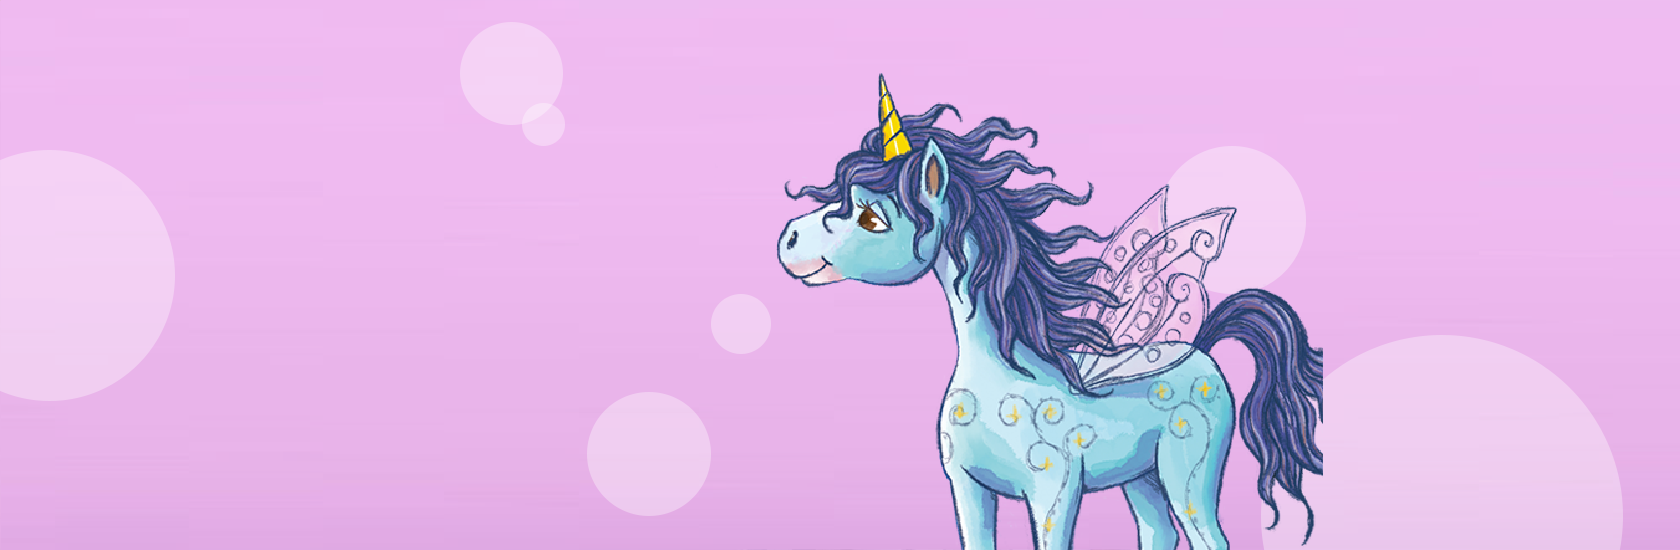 Header-Einhornparadies